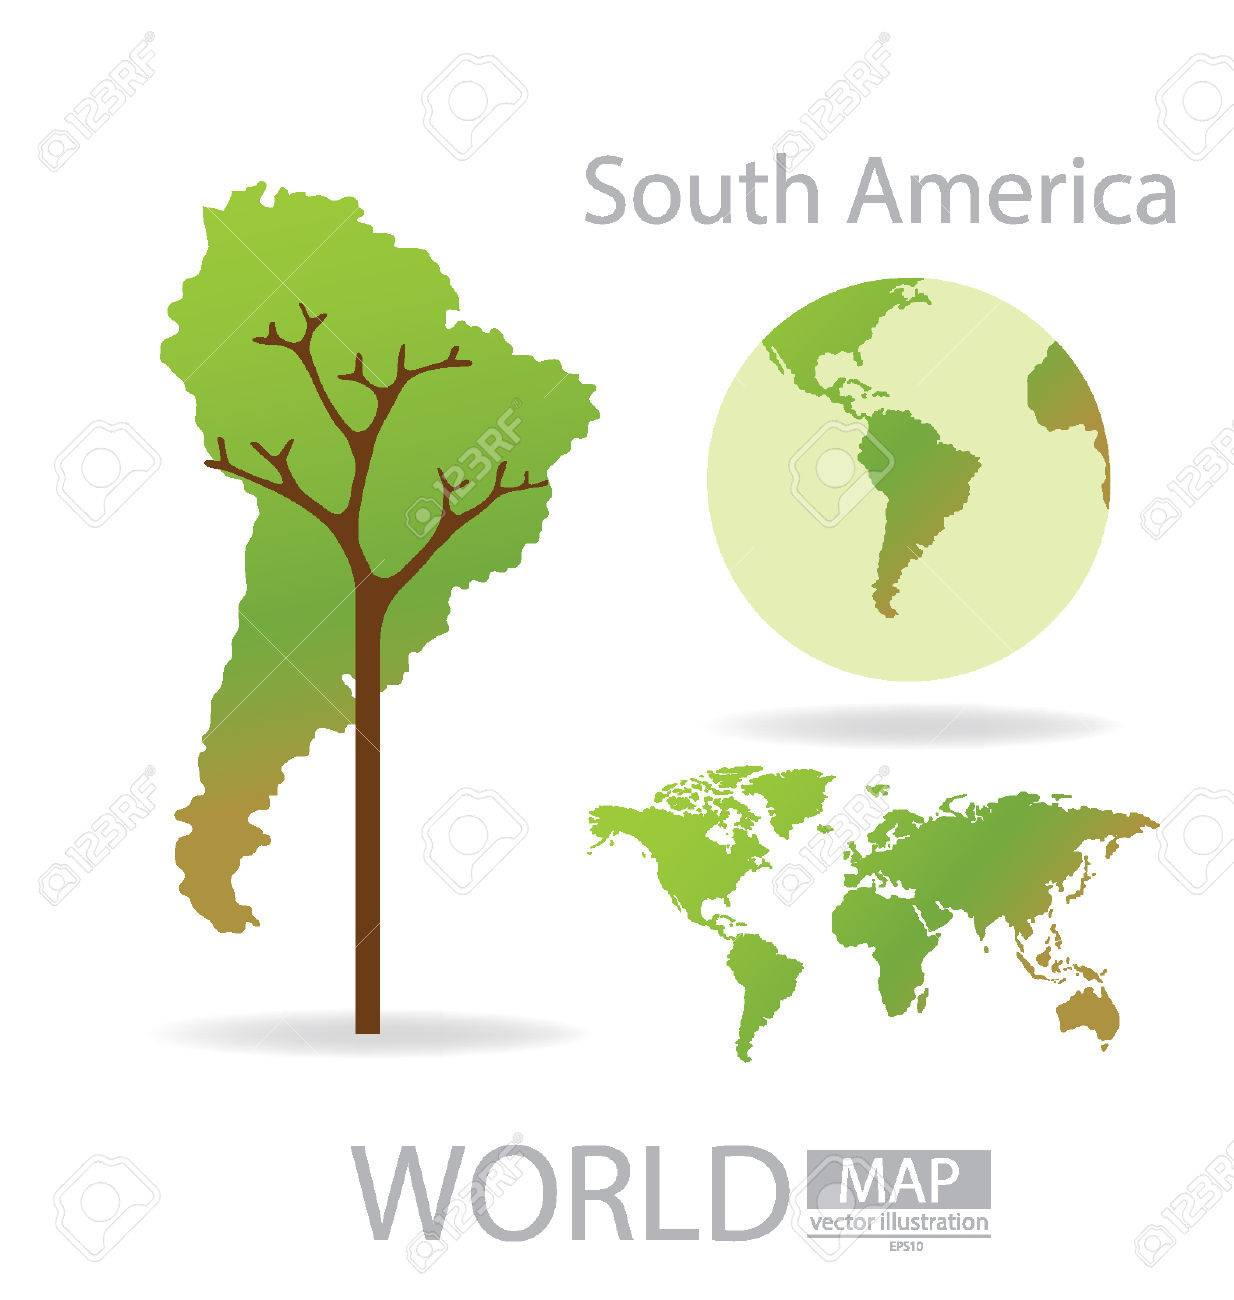 tree design south america world map vector illustration royalty